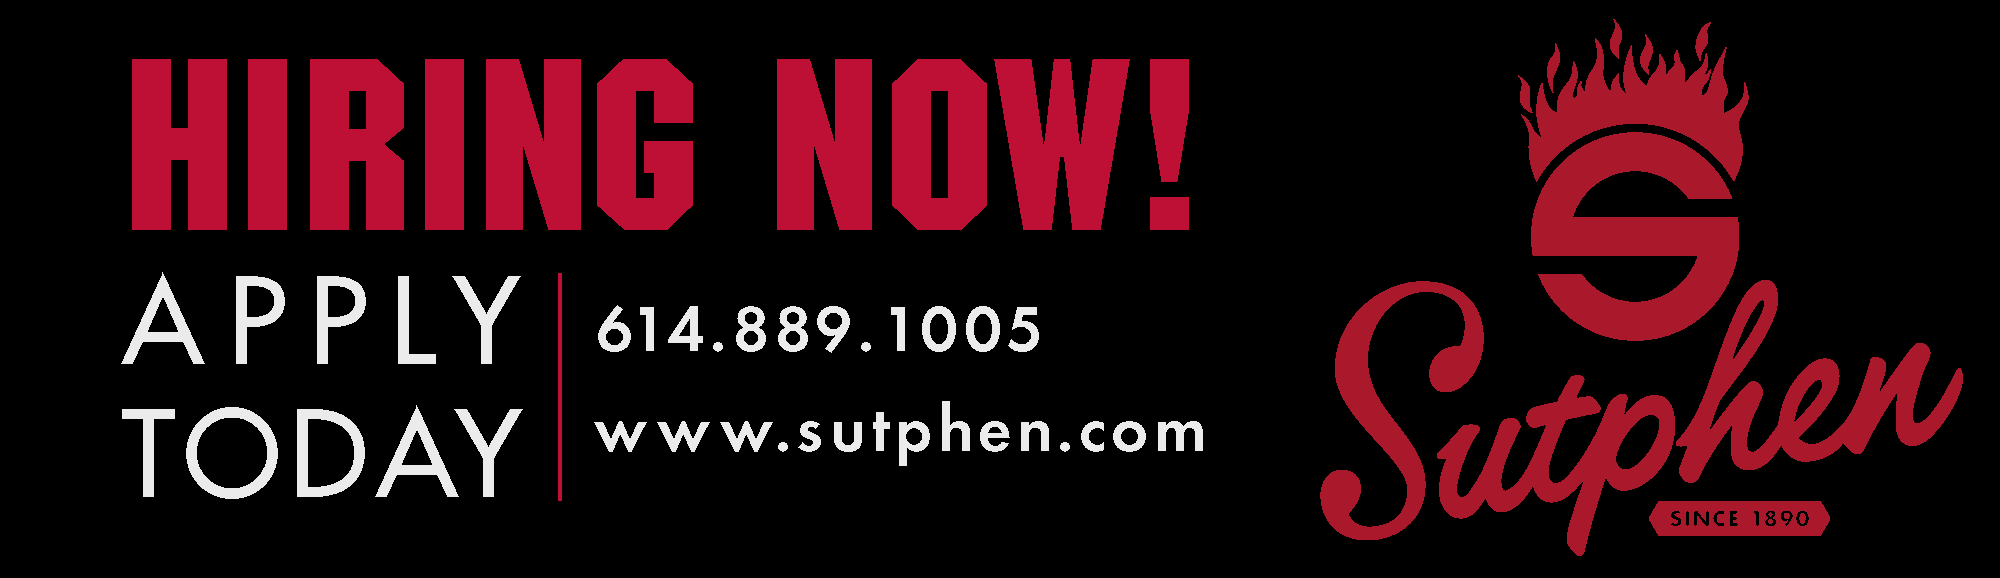 sutphen-now-hiring-digital-billboard-digital-11-5-20-a